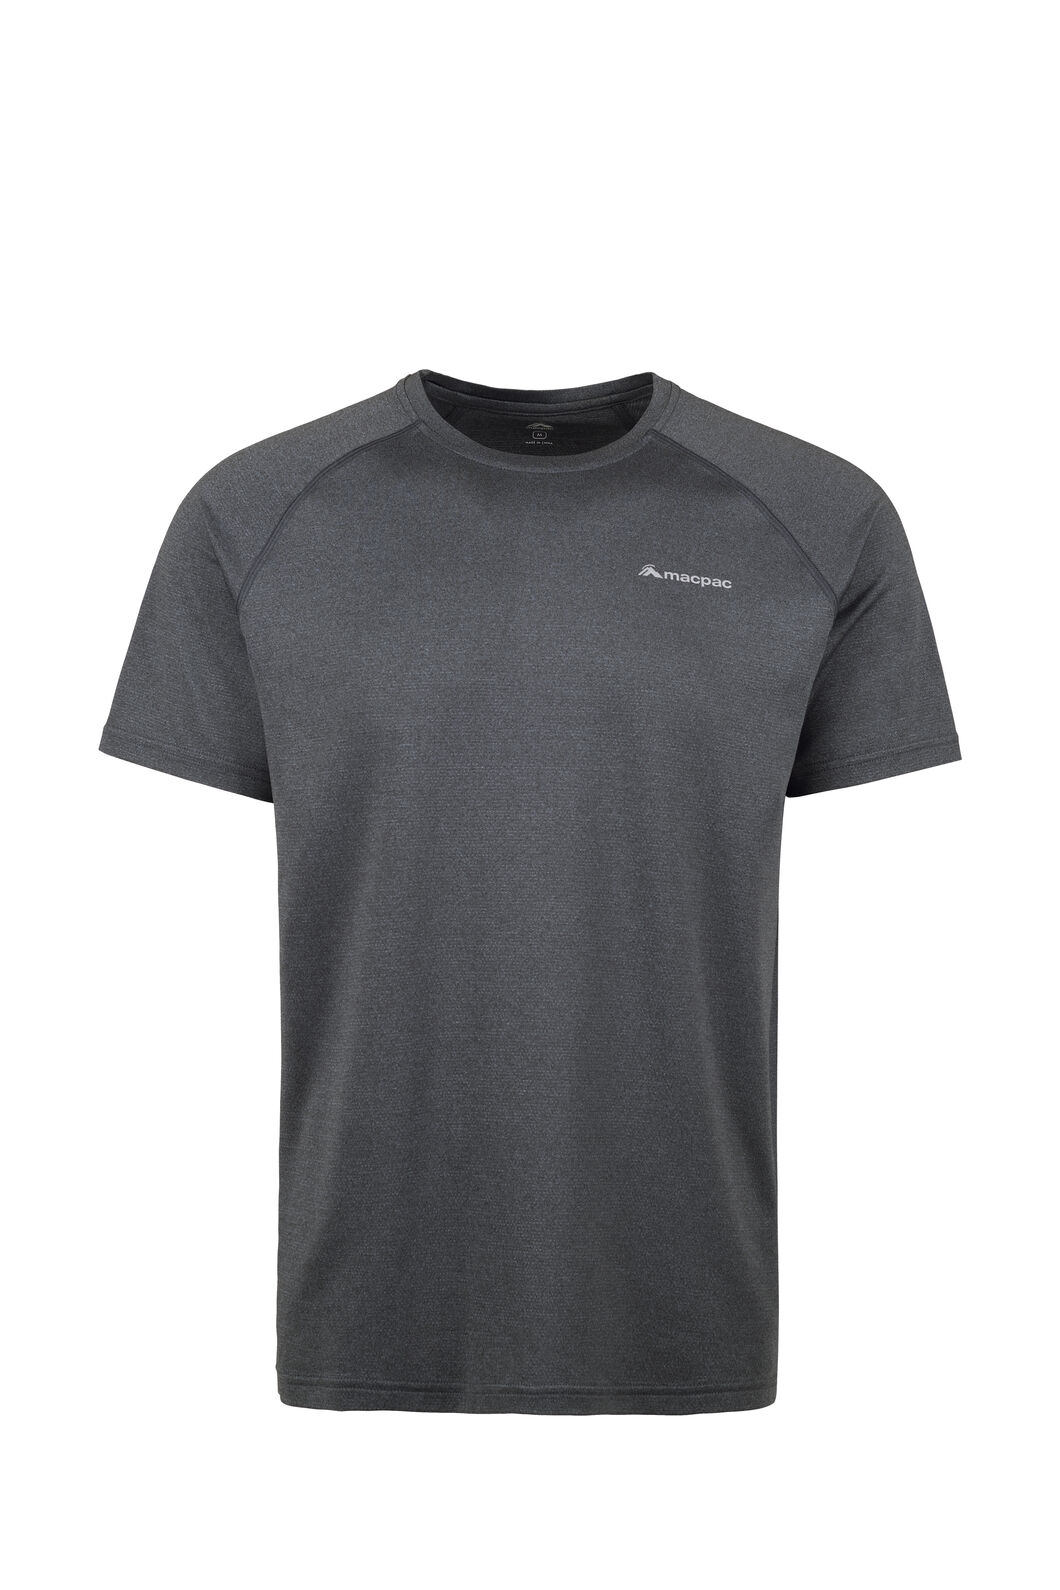 Macpac Eyre Short Sleeve Tee - Men's, Black, hi-res